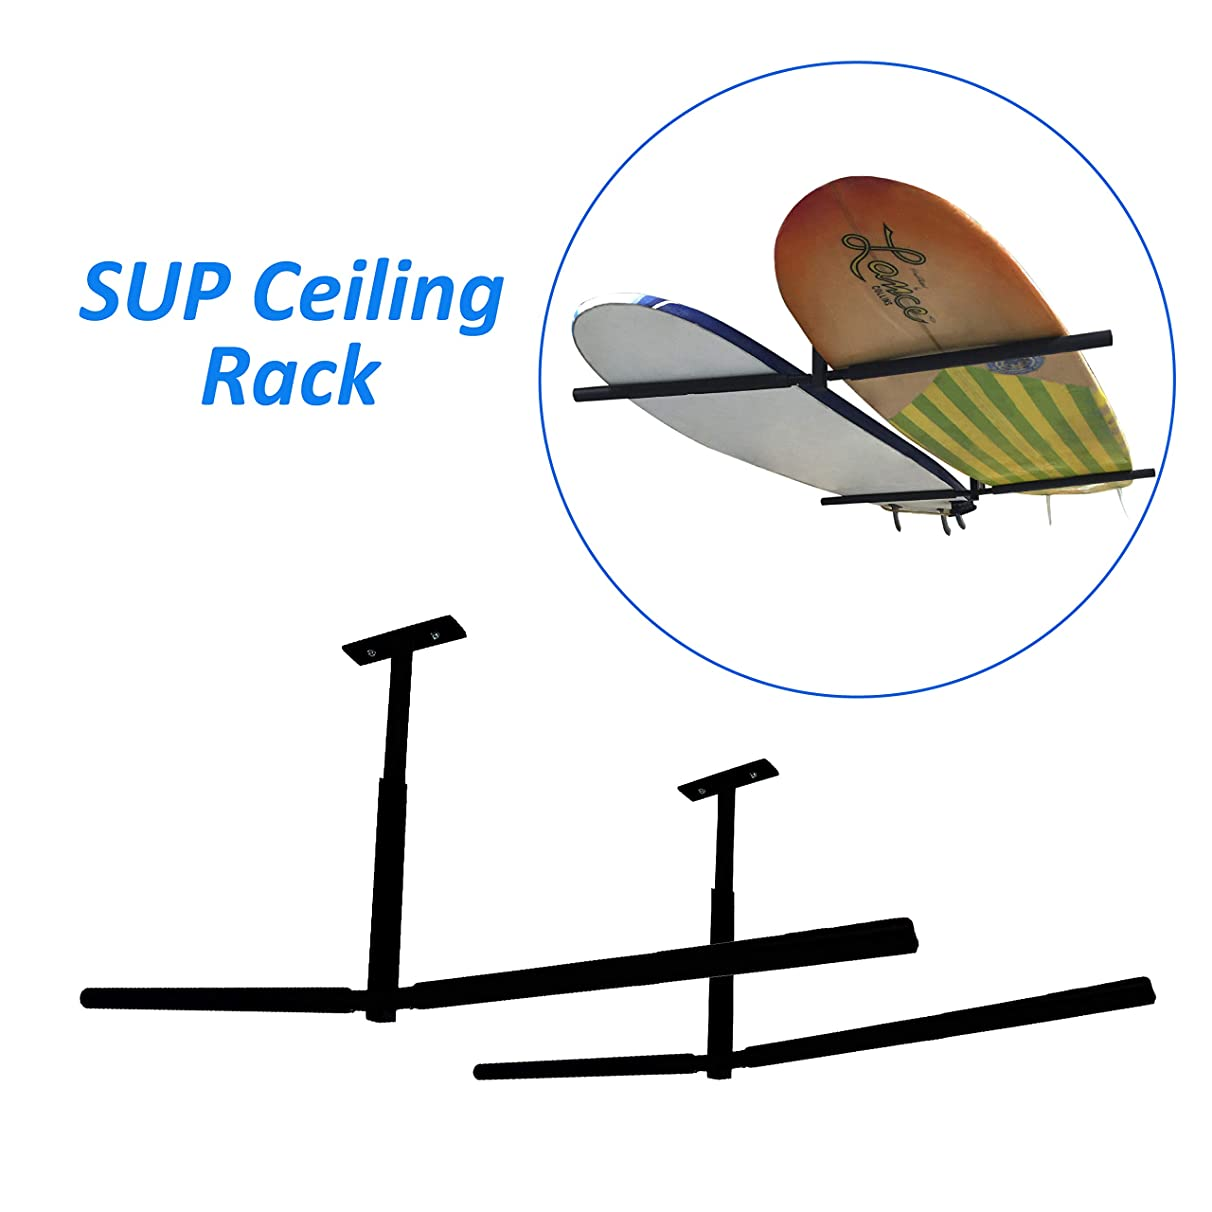 EasyGoProducts EGP-SURF-007 EasyGO SUP Surfboard Overhead Ceiling Mount-for Garage or Room-Paddle Board and Longboard Racks – Double Sided